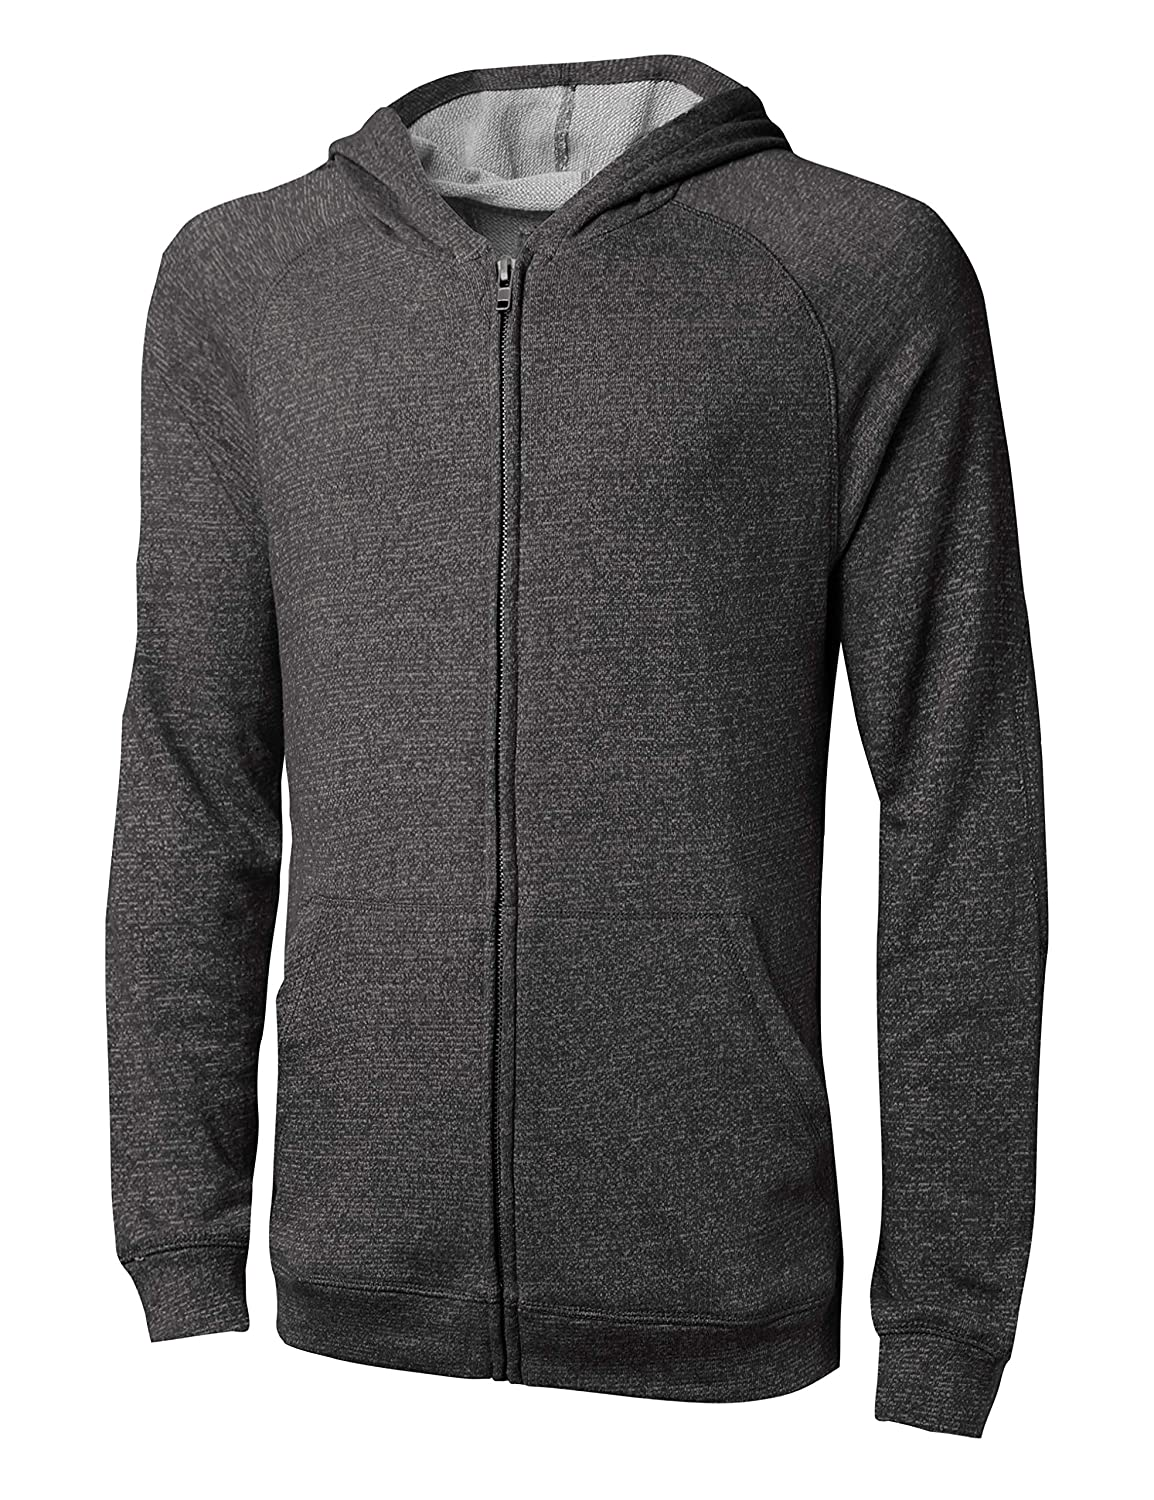 Hat and Beyond Mens French Terry Full Zip Up Fleece Hooded Sweatshirt Lightweight Casual Jacket